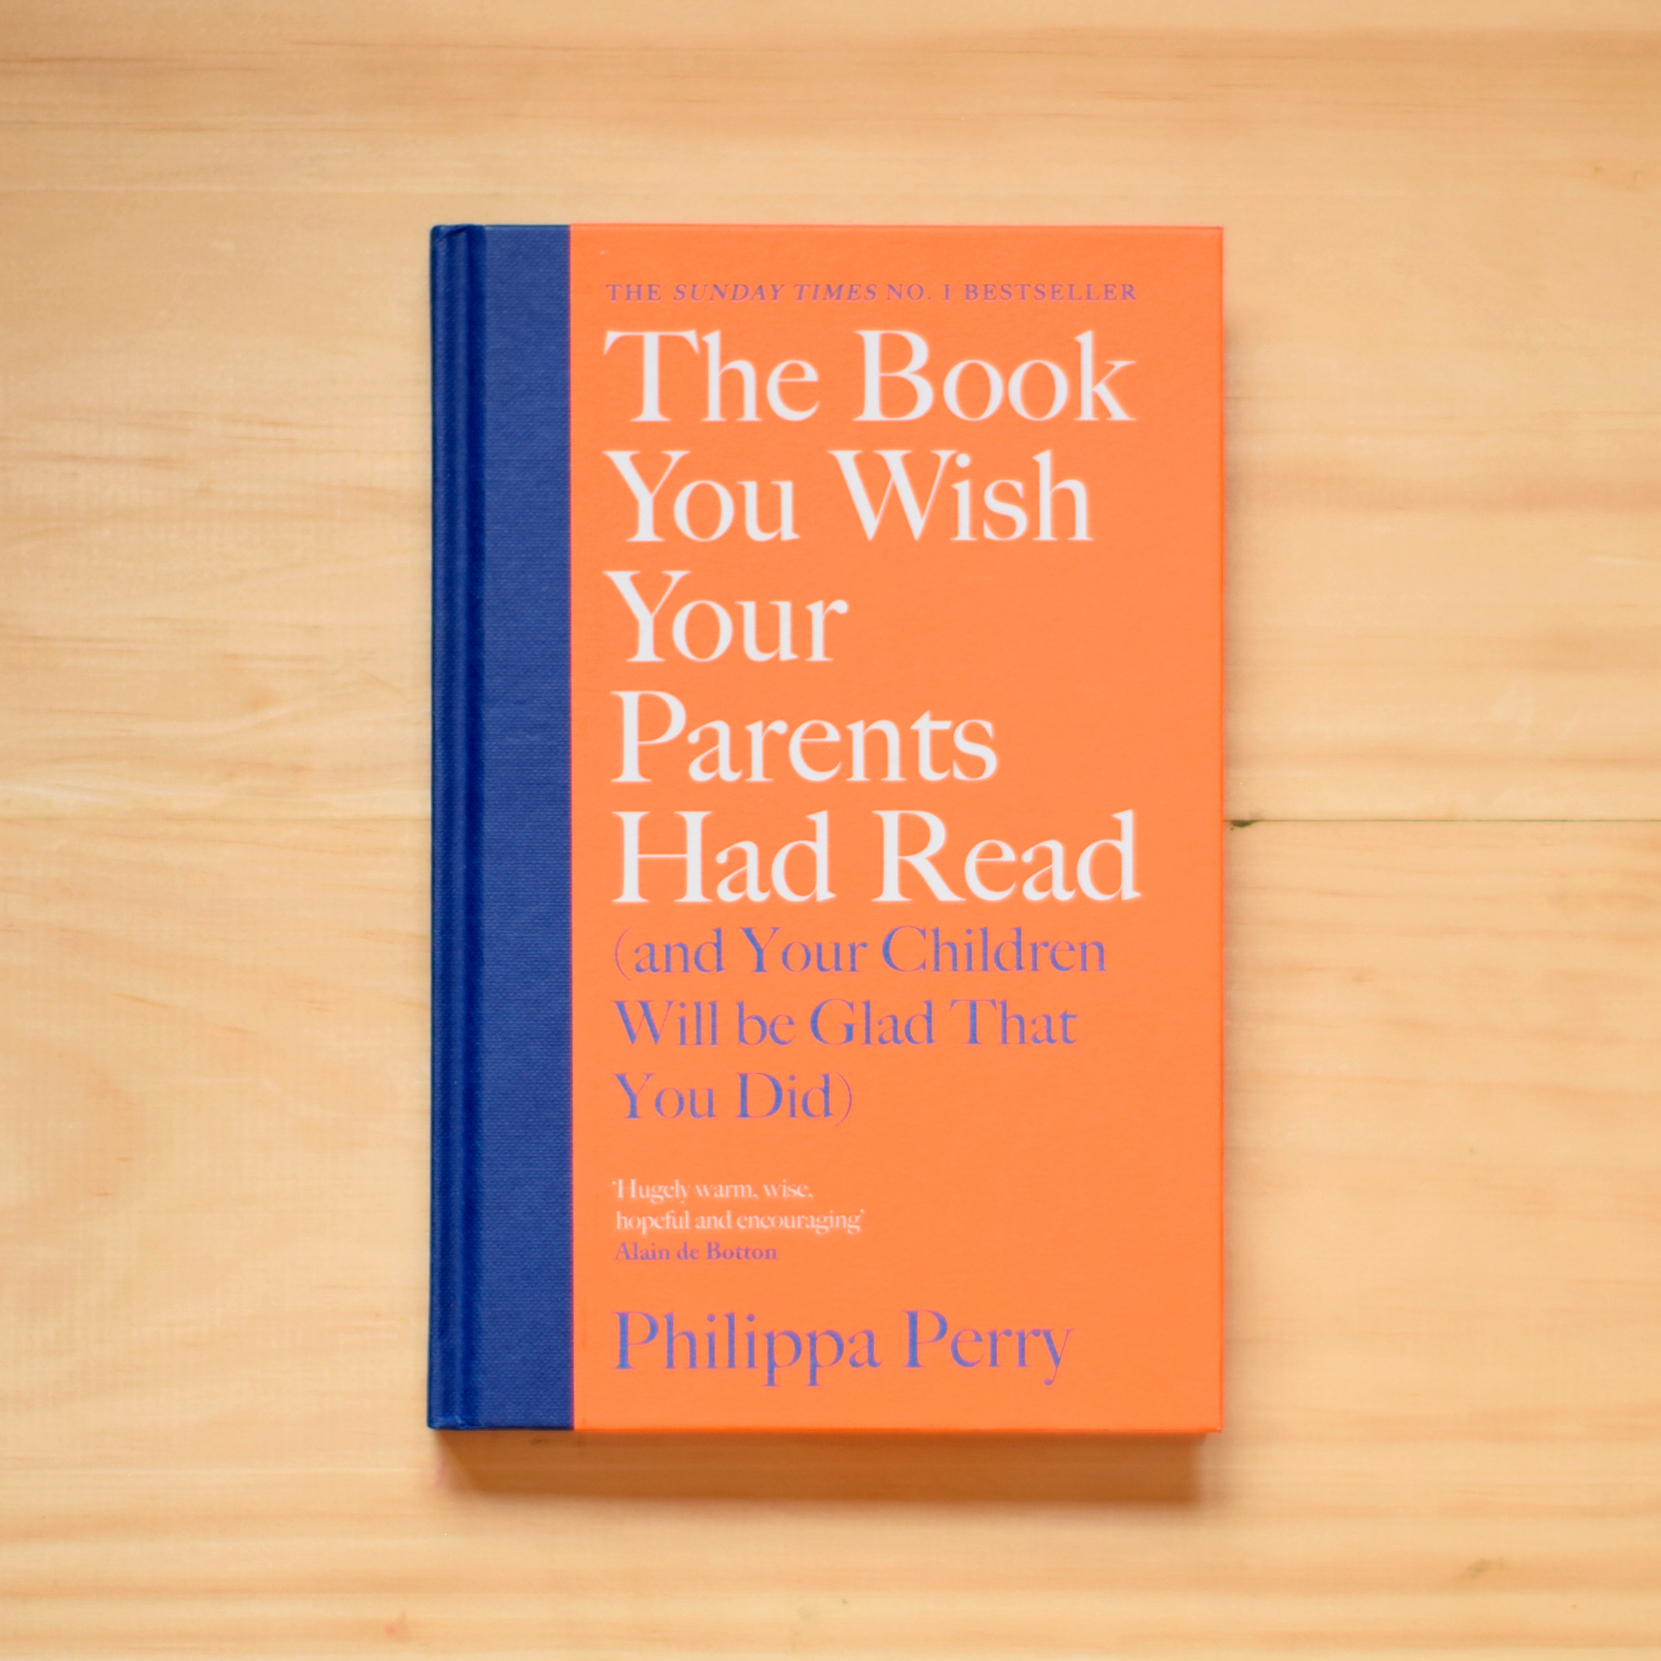 #10: The Book You Wish Your Parents Had Read (and Your Children Will Be Glad That You Did) - By Philippa PerryWith so many young families living in Thanet, it's no surprise that this book it up there in The Margate Bookshop bestsellers! Parenting isn't easy, but psychotherapist and agony aunt Philippa Perry offers honest reflections and advice on the subject to help create good parent-child relationships.